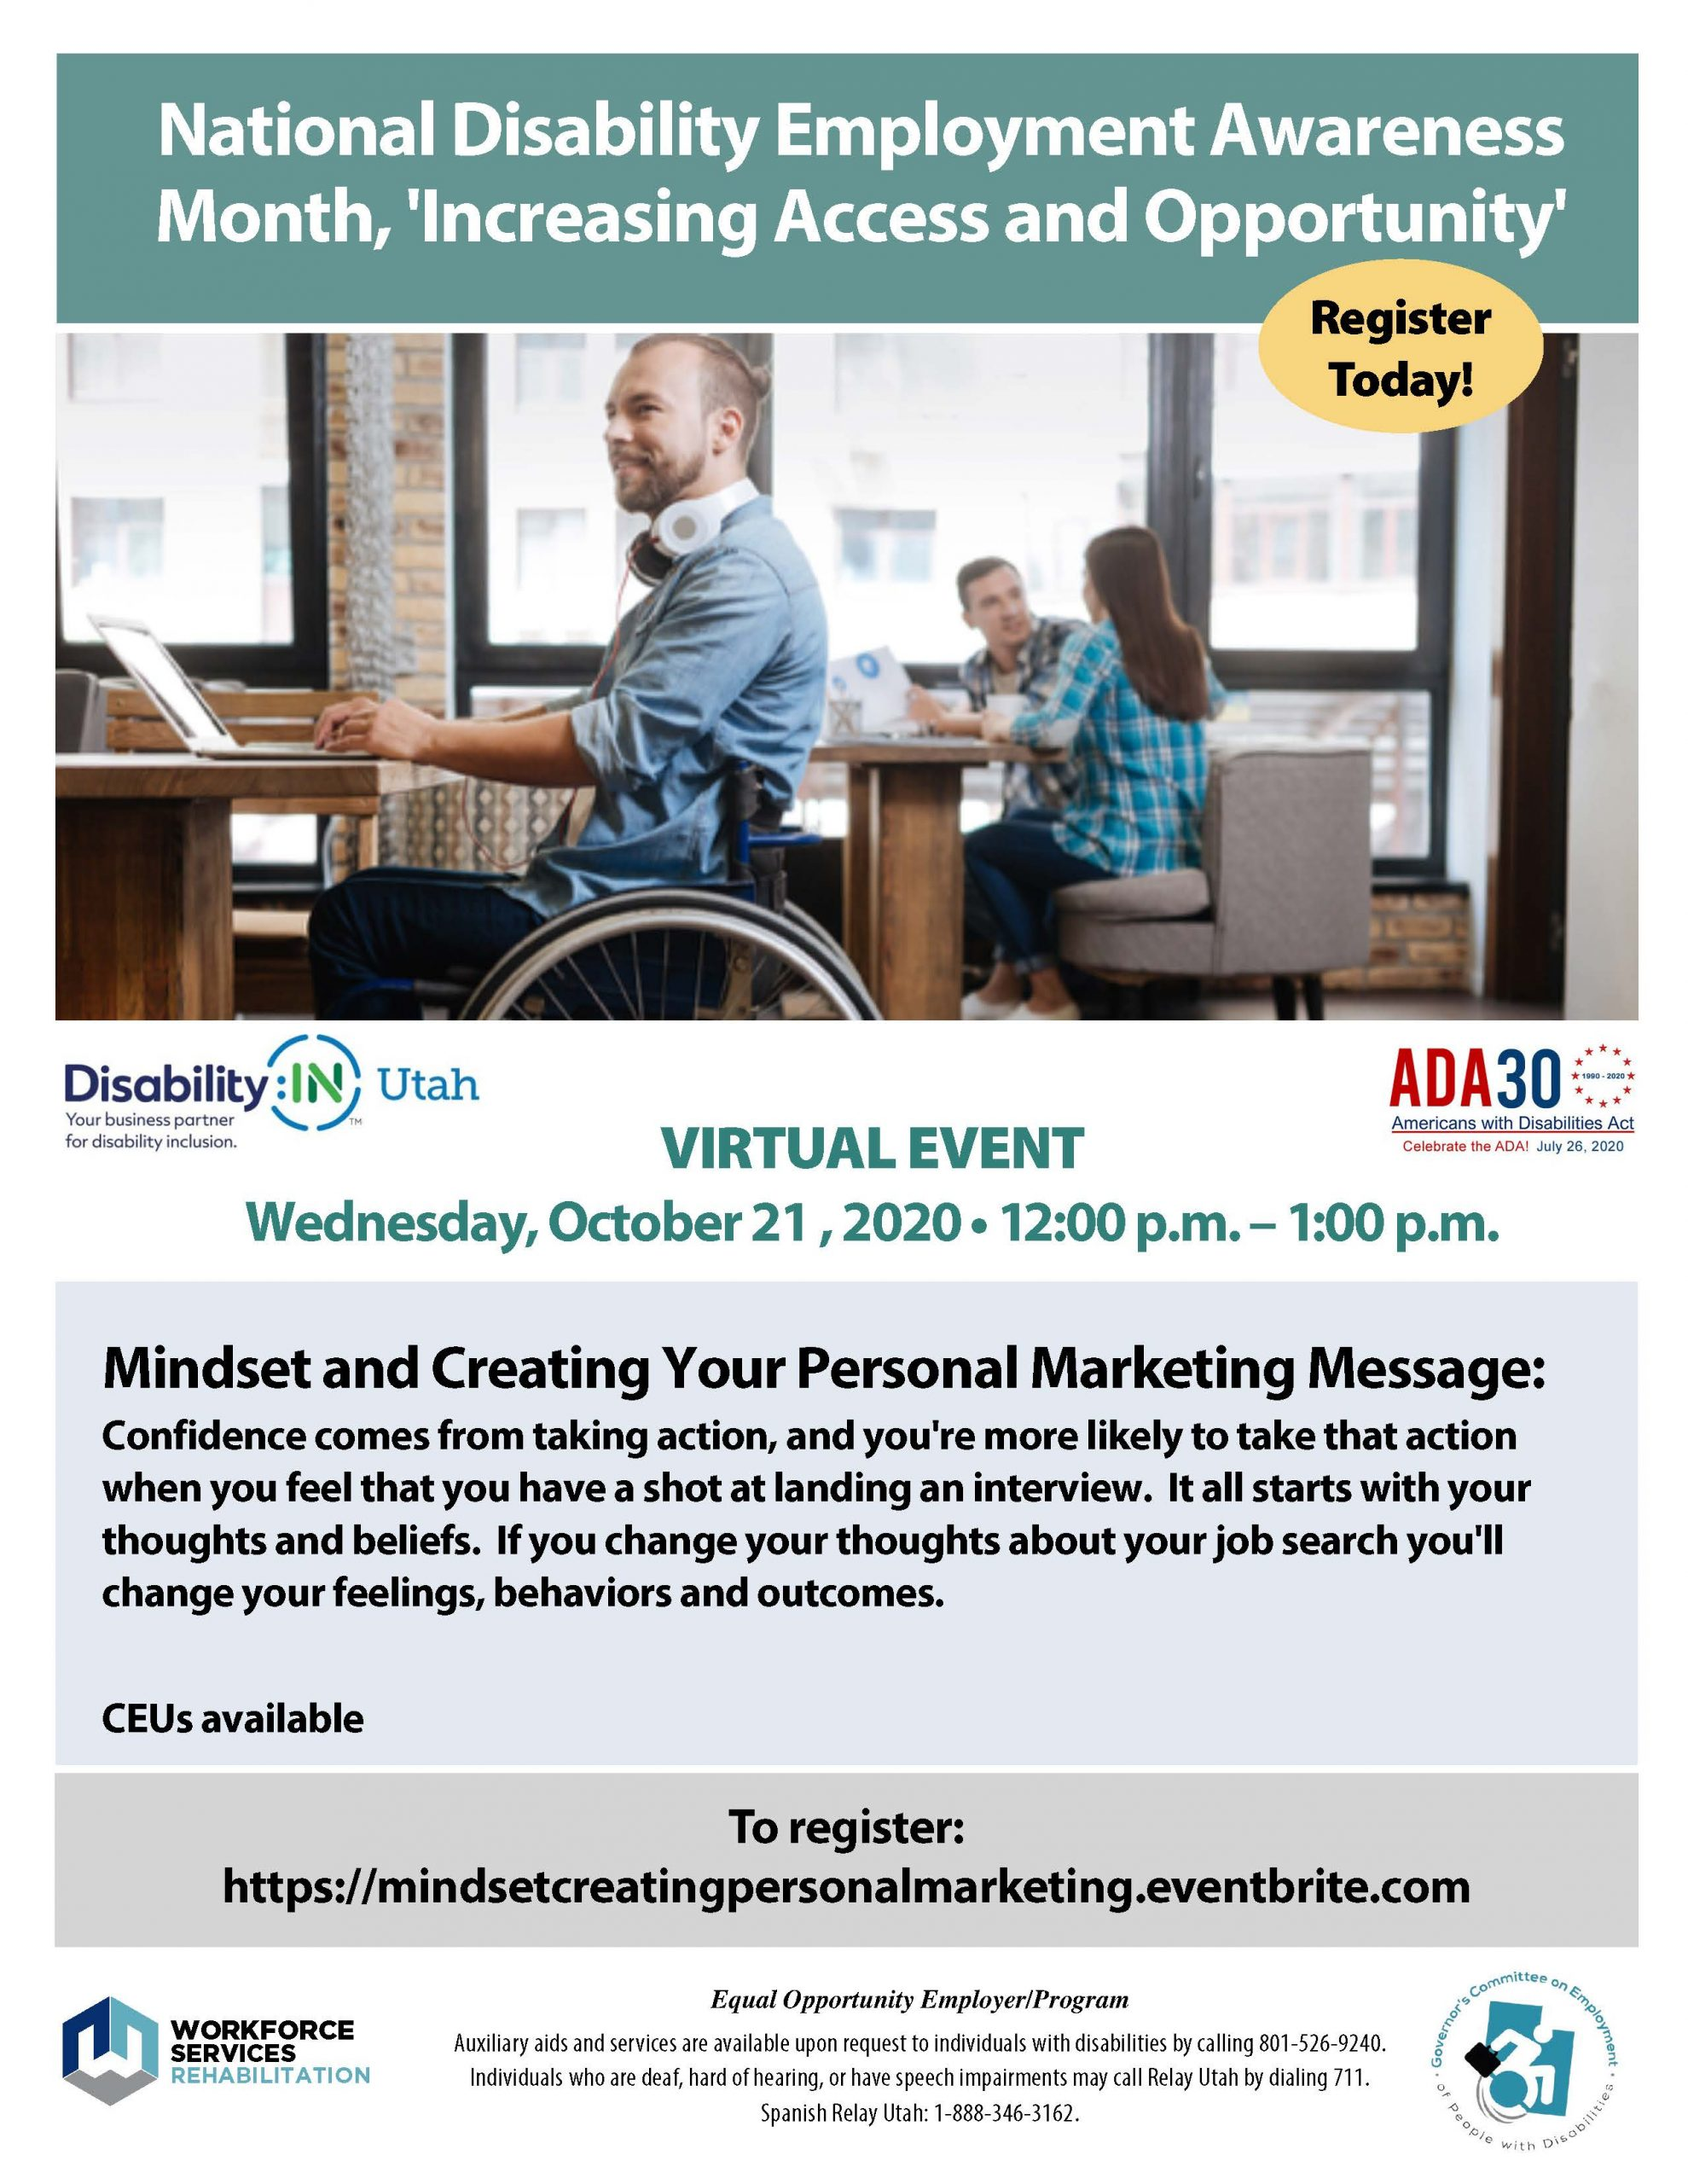 Lunch and Learn Mindset and Creating Your Personal Marketing Messsage Flyer